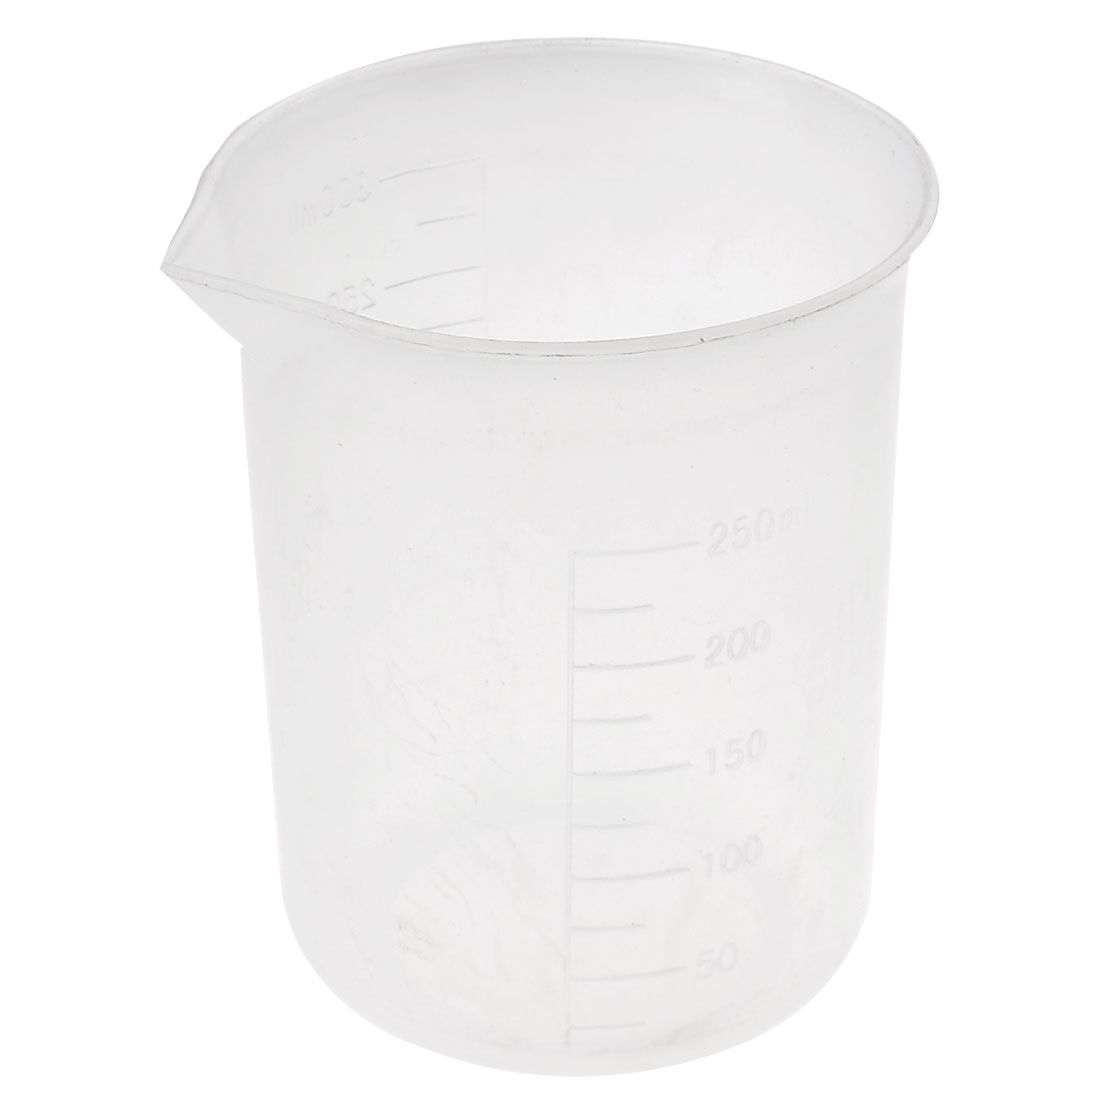 Home Clear White Plastic Ingredients Water Sauce Liquid Measuring Cup 300ml